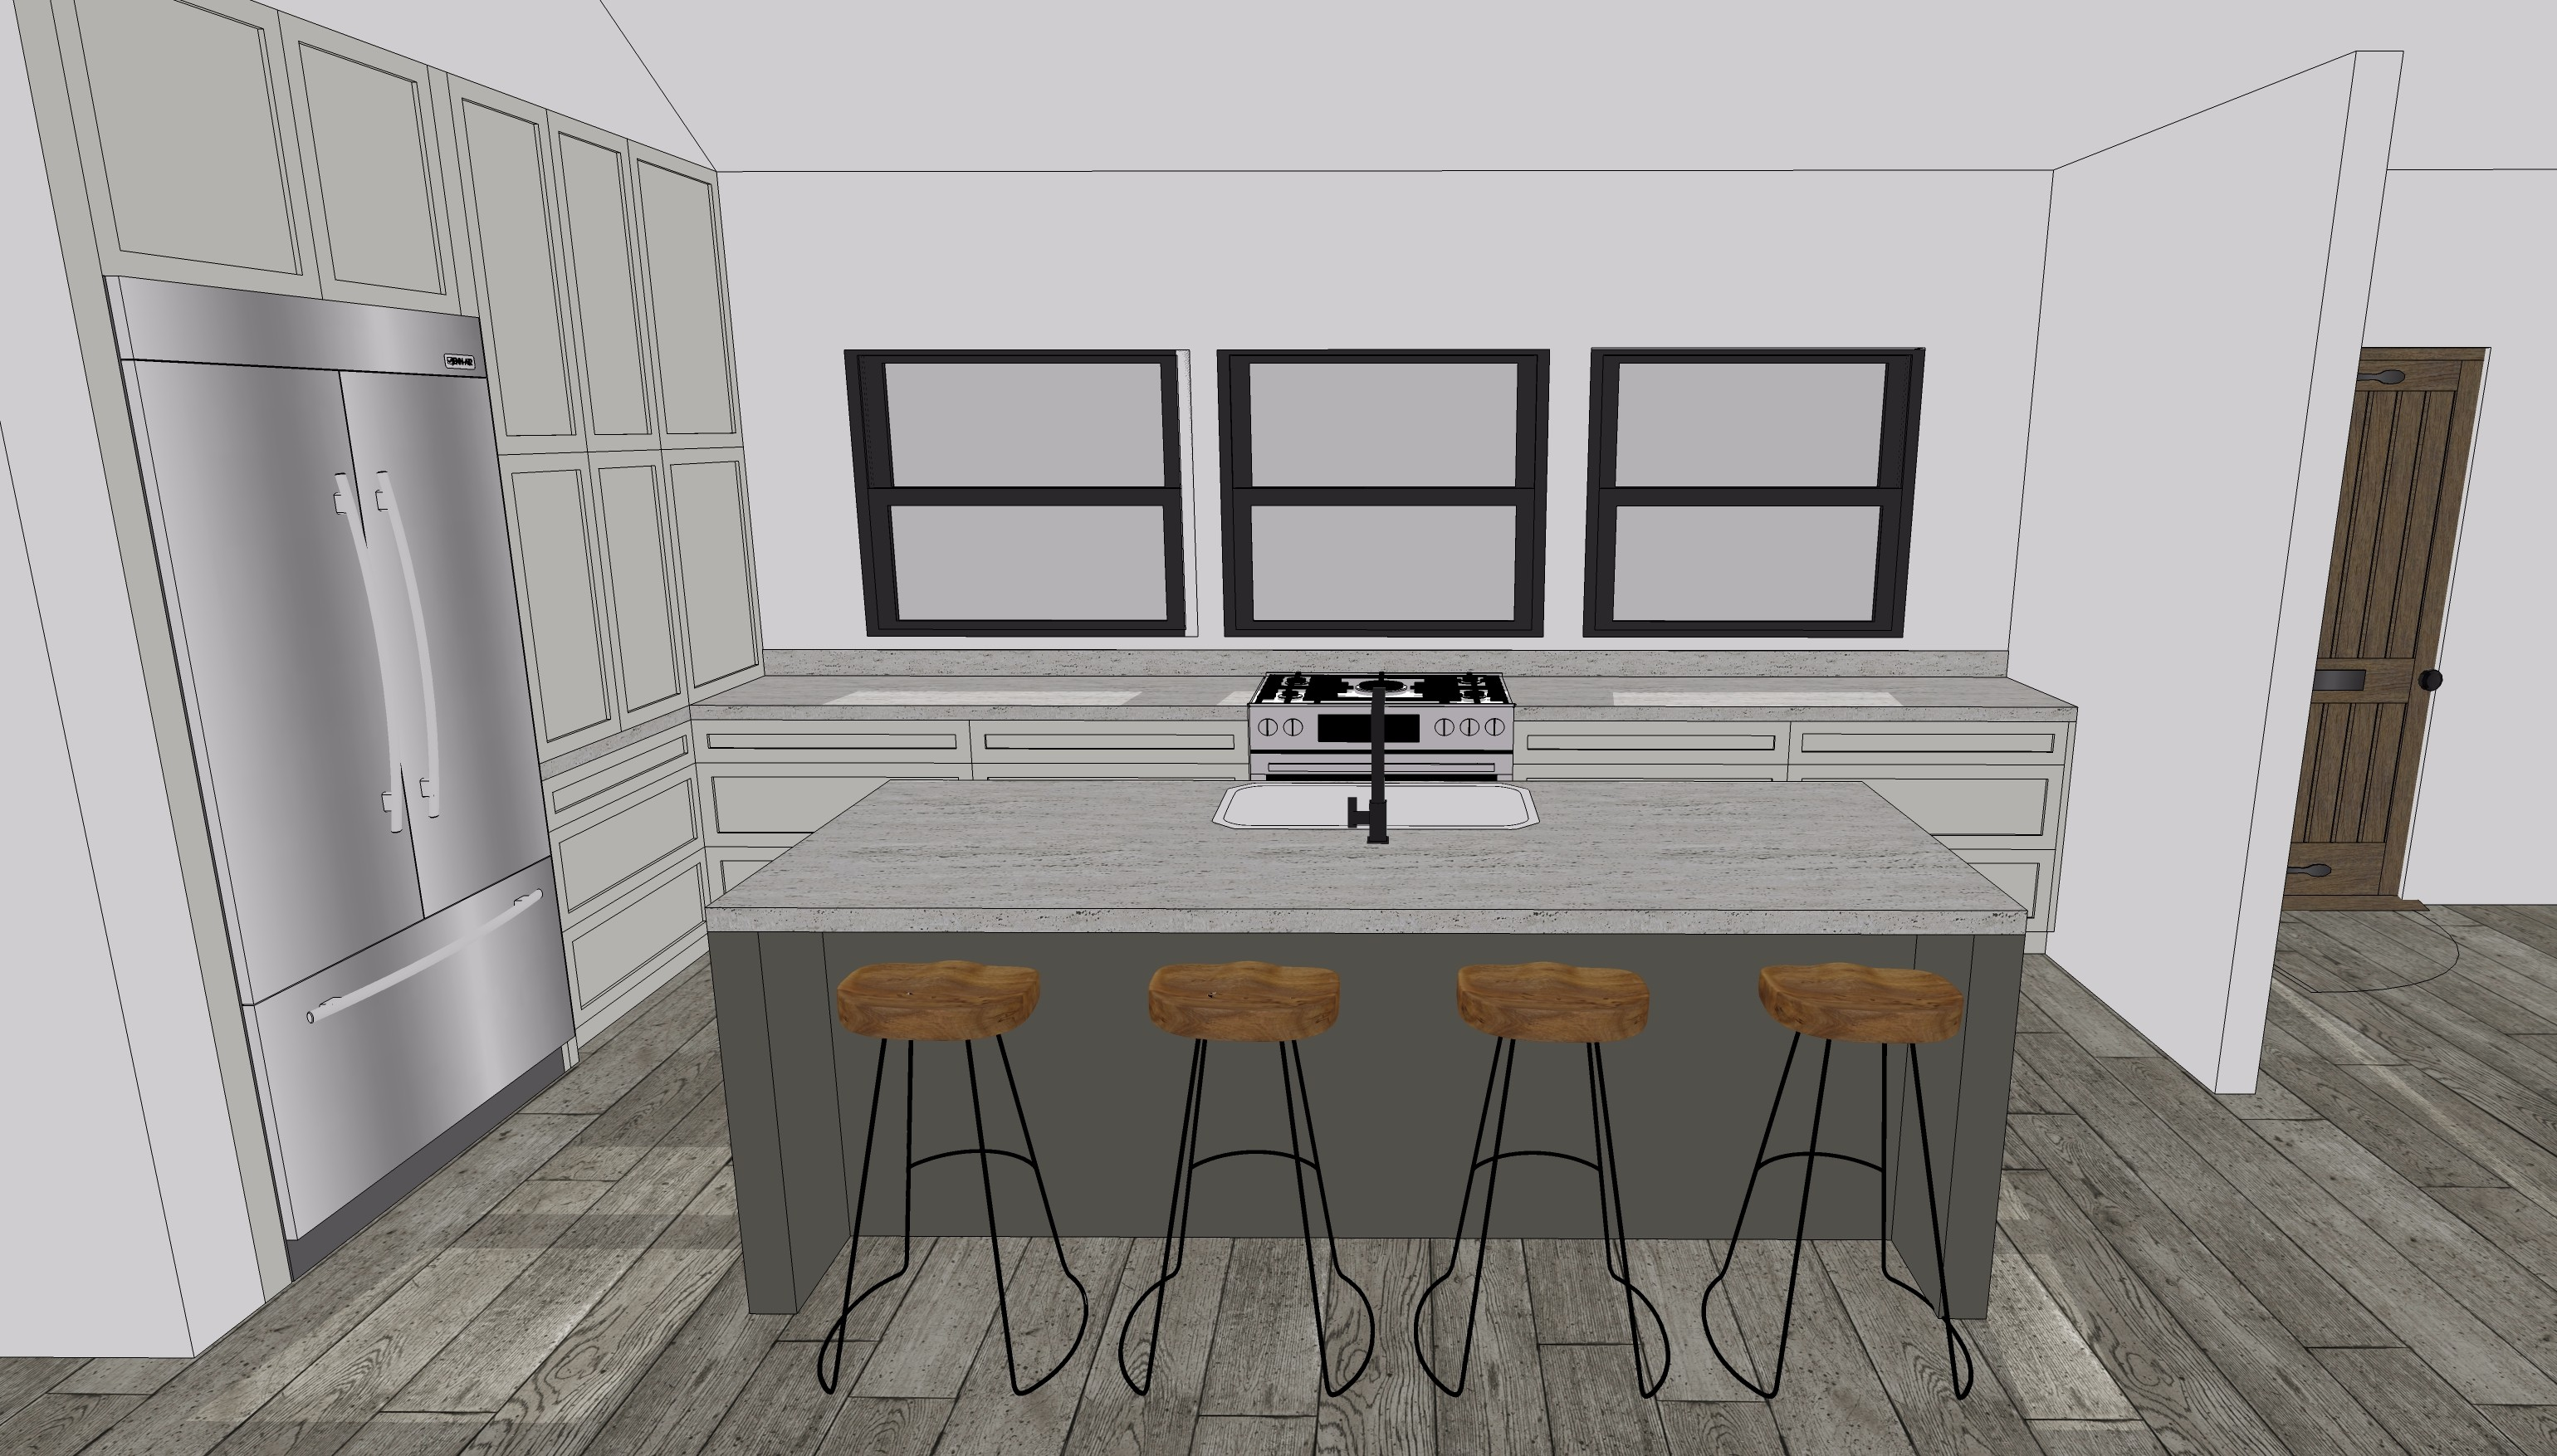 Drawing in SketchUp